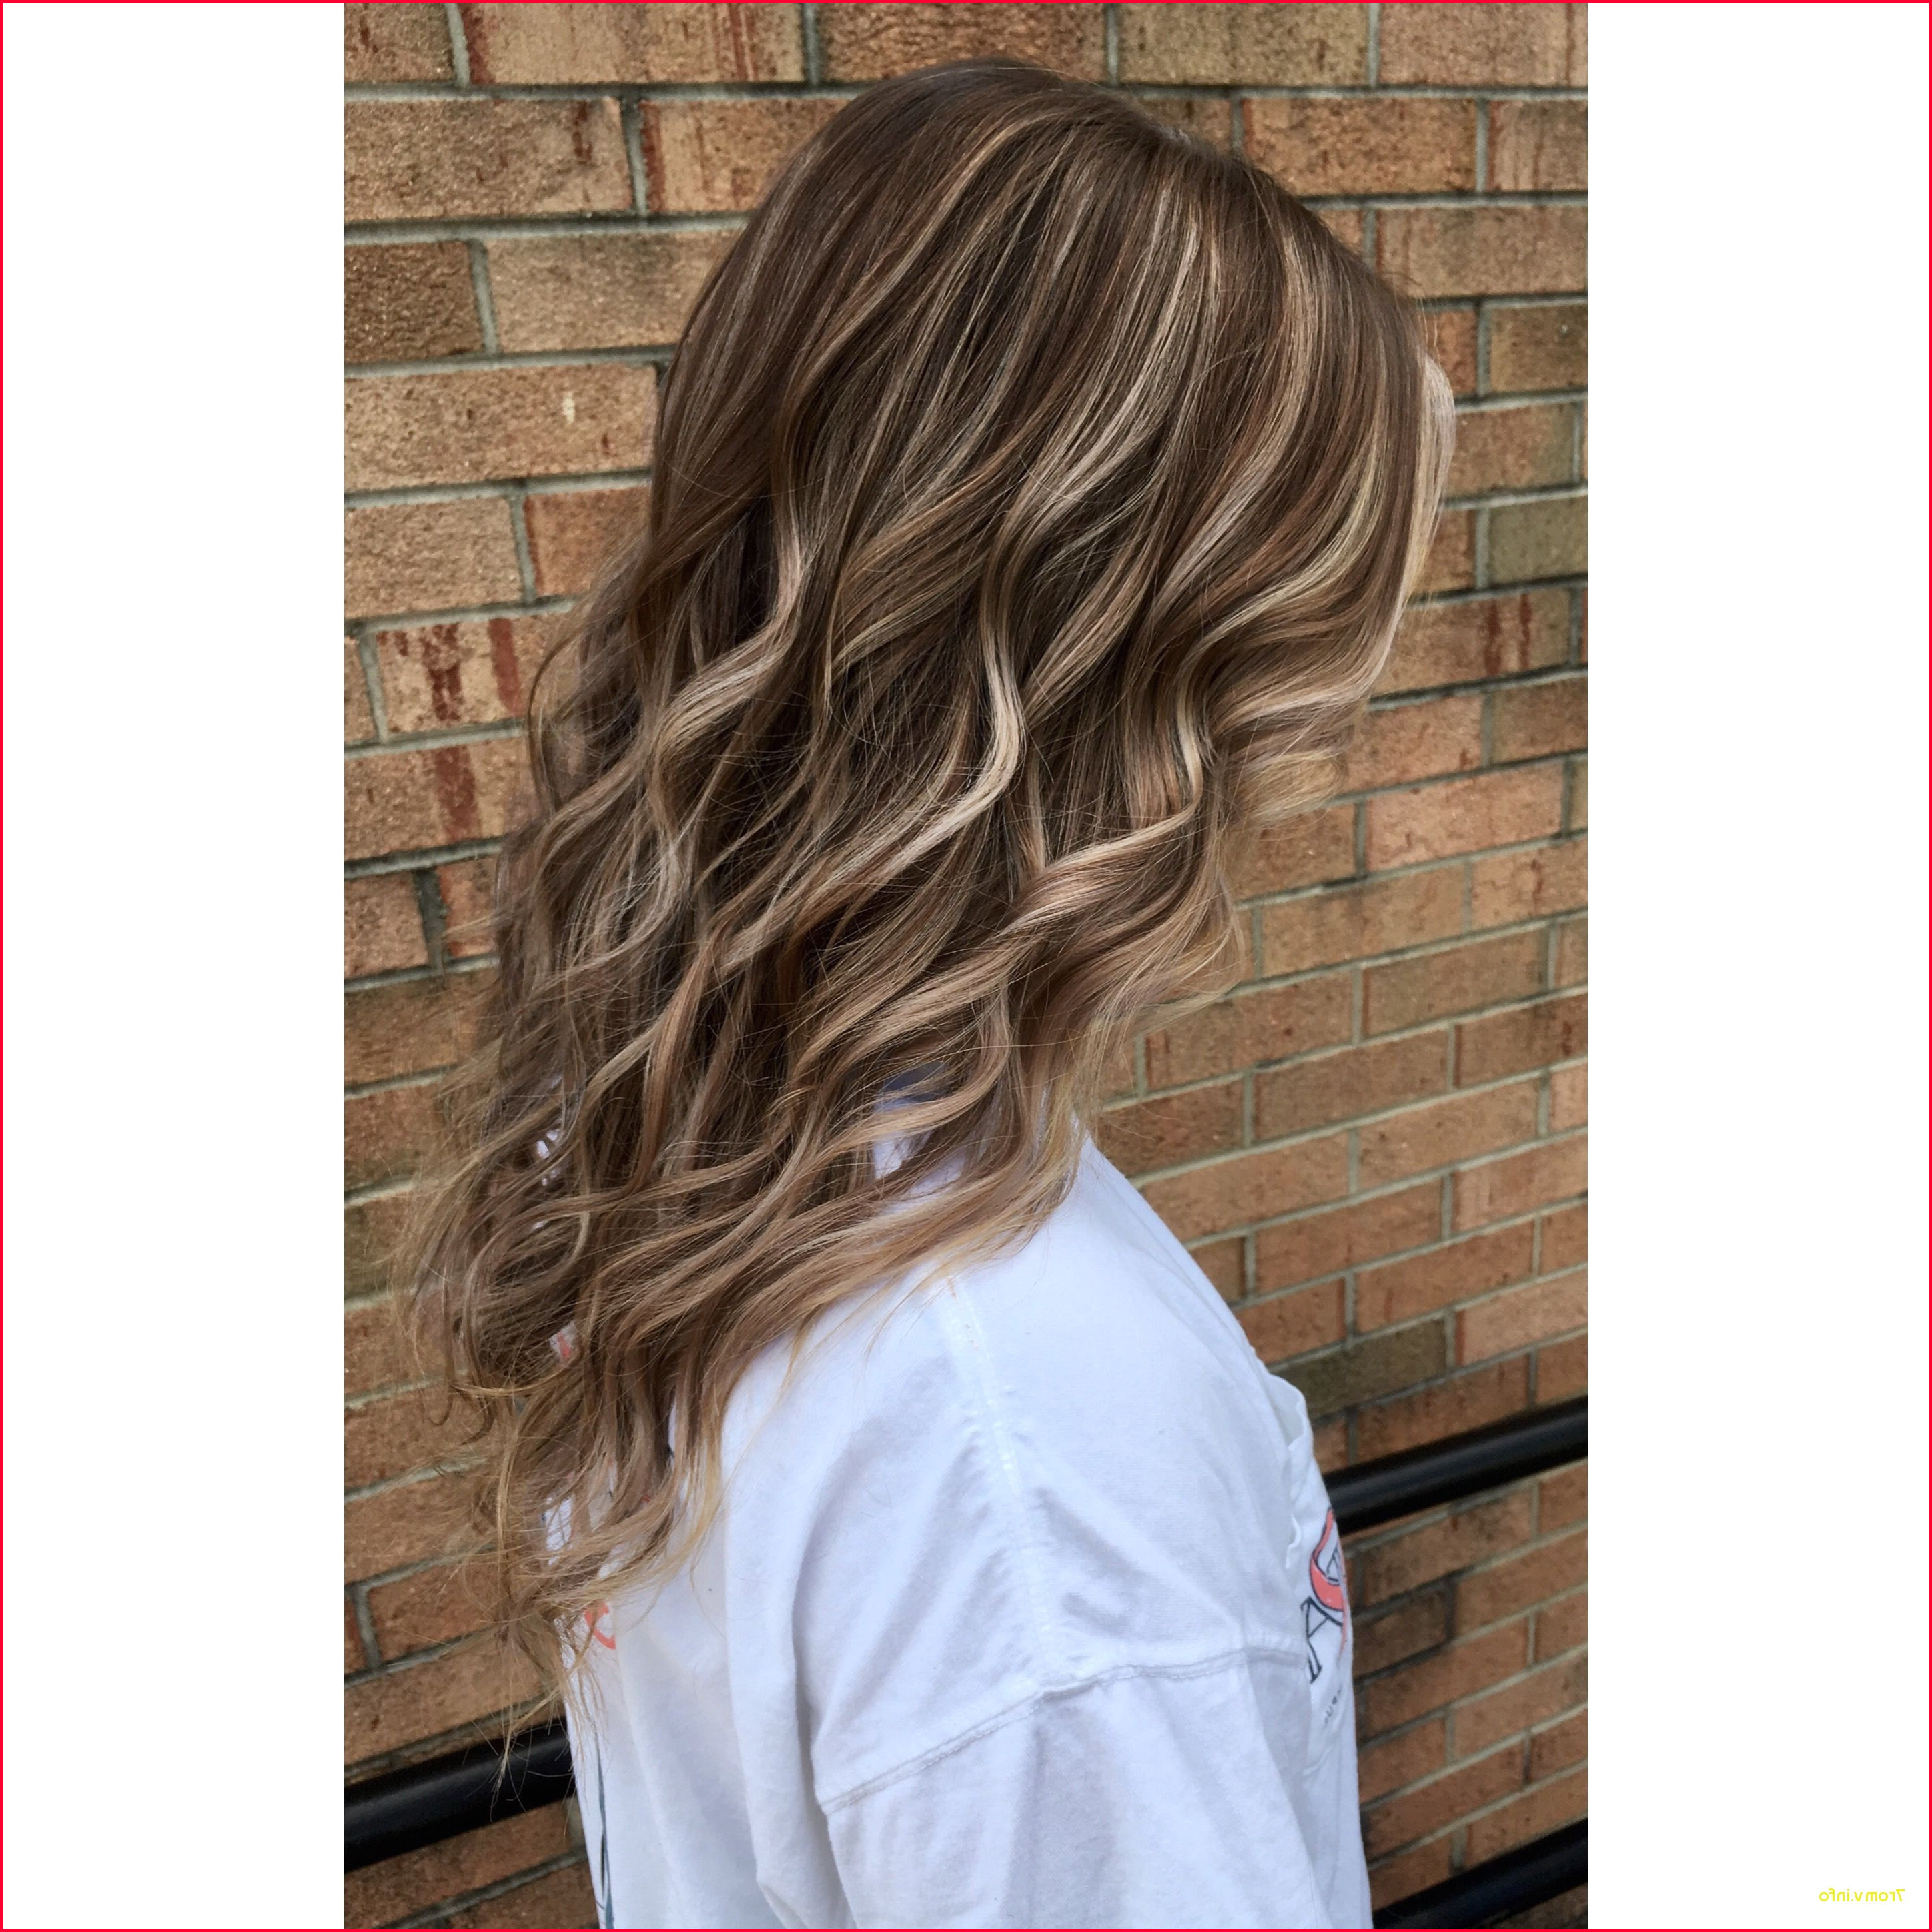 Best Bleach Blonde Hair Color Gallery Of Hair Color Ideas 203854 Within Favorite Brown Blonde Hair With Long Layers Hairstyles (View 11 of 20)